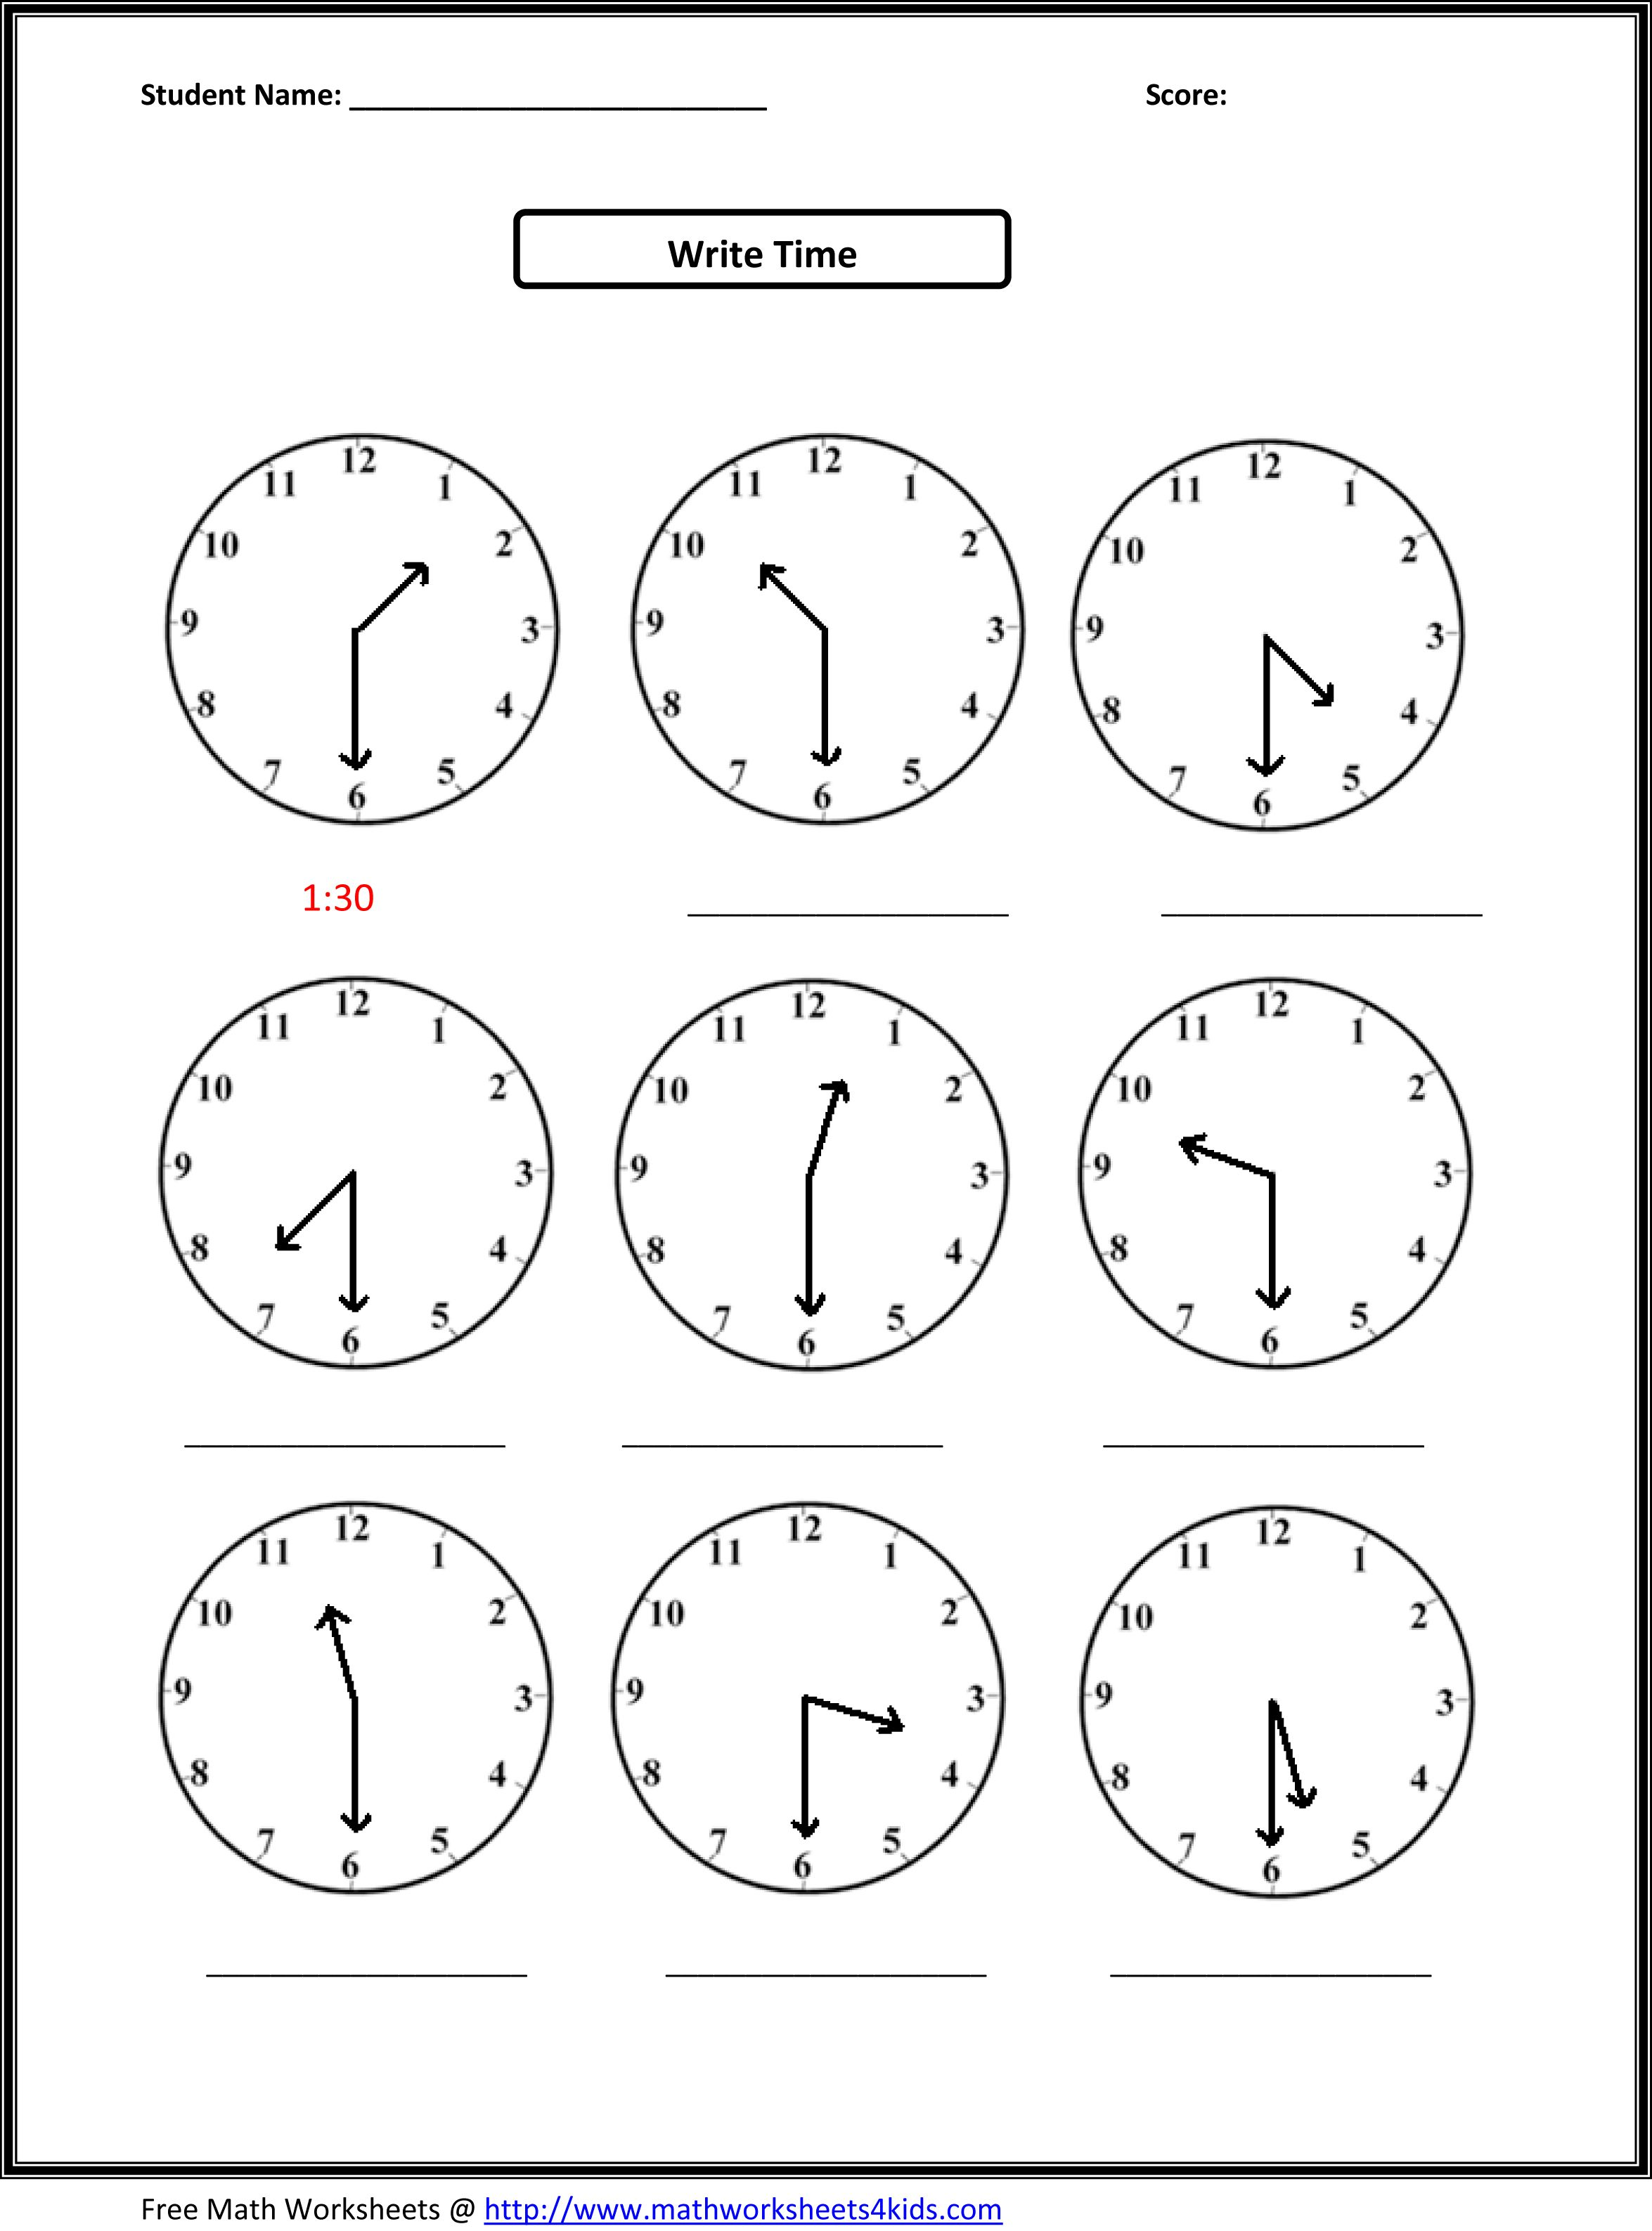 Proatmealus  Inspiring Worksheet On Time For Grade   Reocurent With Goodlooking Free Printable Telling Time Worksheets Nd Grade  Reocurent With Appealing Free Phonic Worksheets For Kindergarten Also Balance Scales Worksheet In Addition Subtraction Worksheet For Kids And Caption Writing Worksheet As Well As Math Worksheets For Kg Additionally Number Names Worksheets From Reocurentcom With Proatmealus  Goodlooking Worksheet On Time For Grade   Reocurent With Appealing Free Printable Telling Time Worksheets Nd Grade  Reocurent And Inspiring Free Phonic Worksheets For Kindergarten Also Balance Scales Worksheet In Addition Subtraction Worksheet For Kids From Reocurentcom